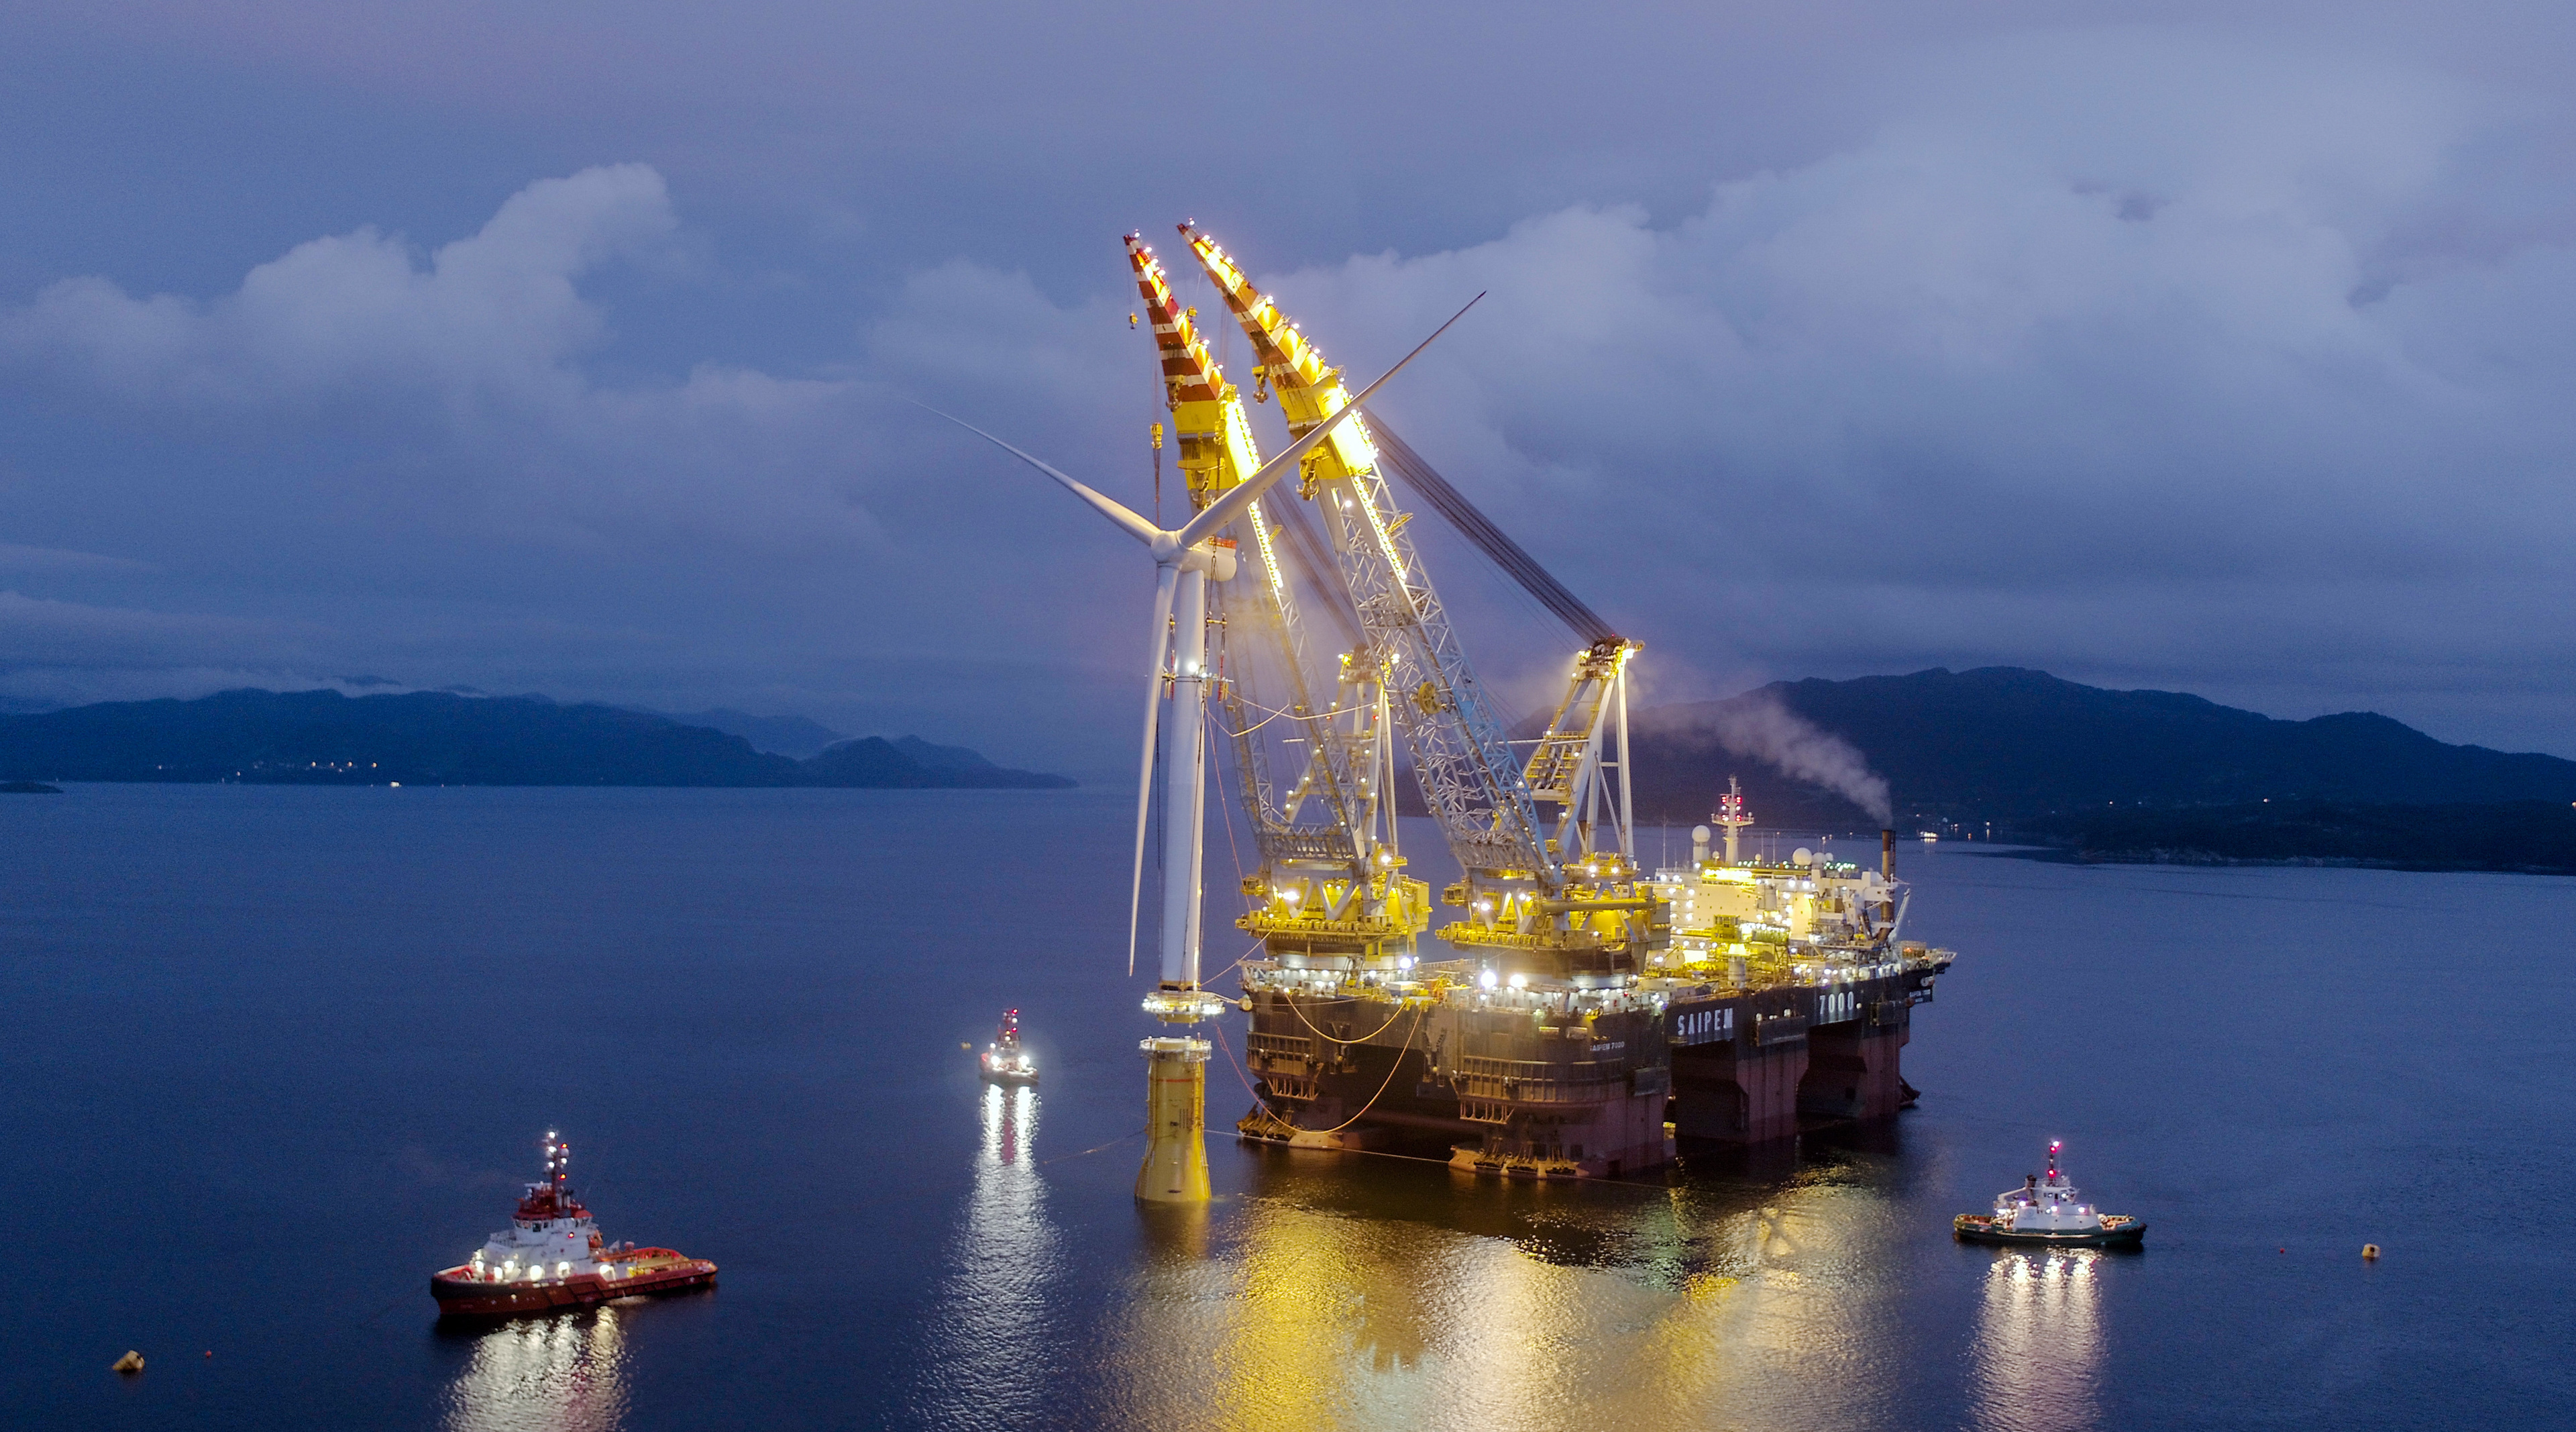 Saipem 7000 lifting the Hywind turbine towers into their floating foundations